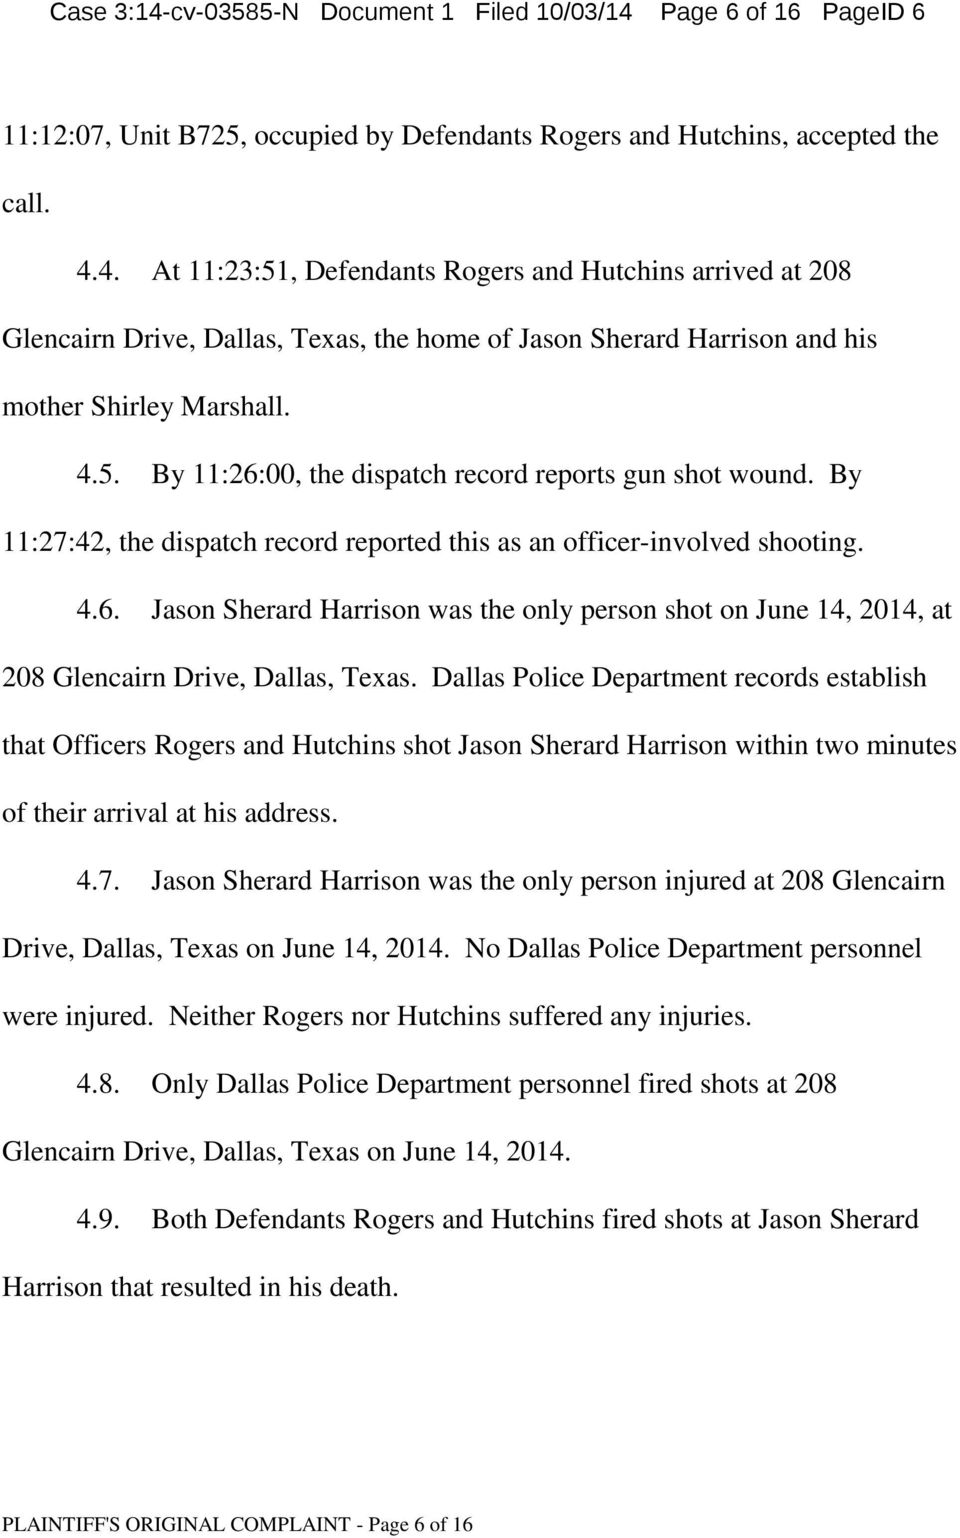 Dallas Police Department records establish that Officers Rogers and Hutchins shot Jason Sherard Harrison within two minutes of their arrival at his address. 4.7.